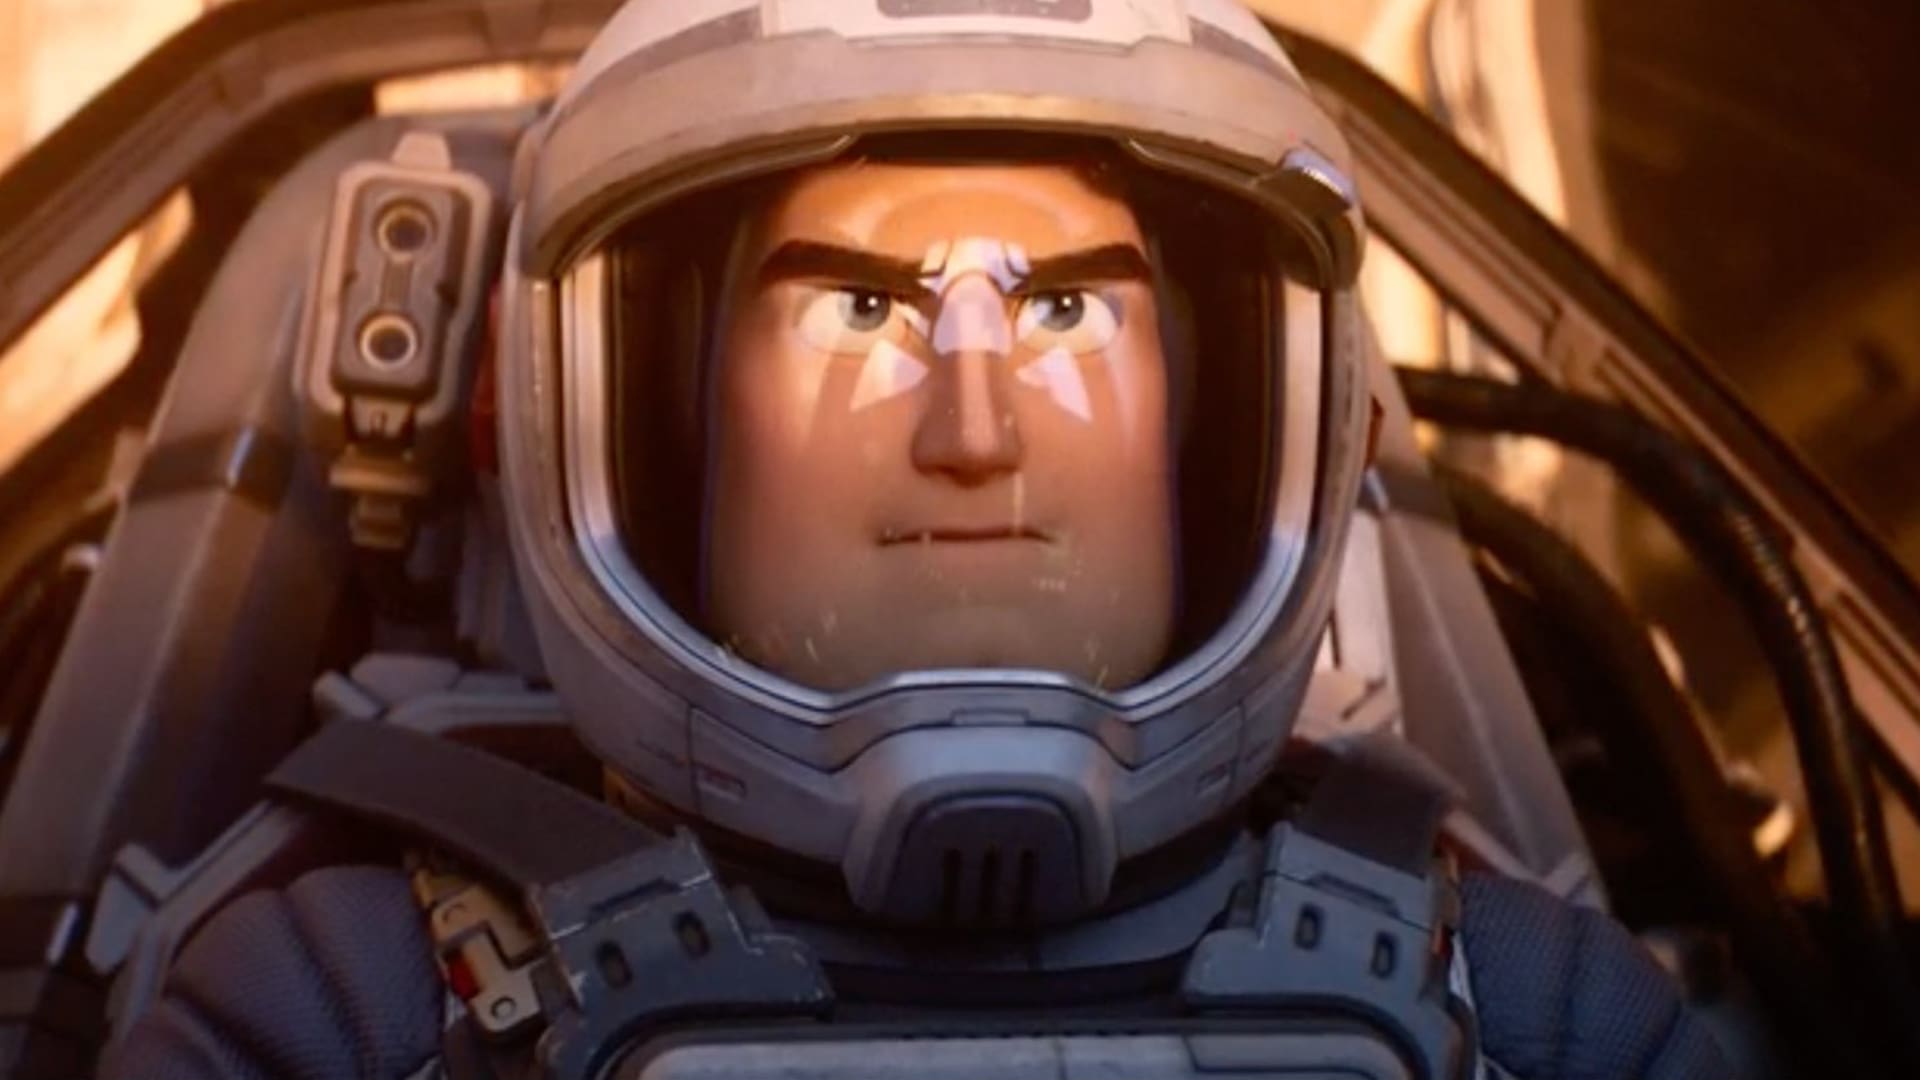 Animated character Buzz Lightyear wearing a space helmet from Disney and Pixar's Lightyear